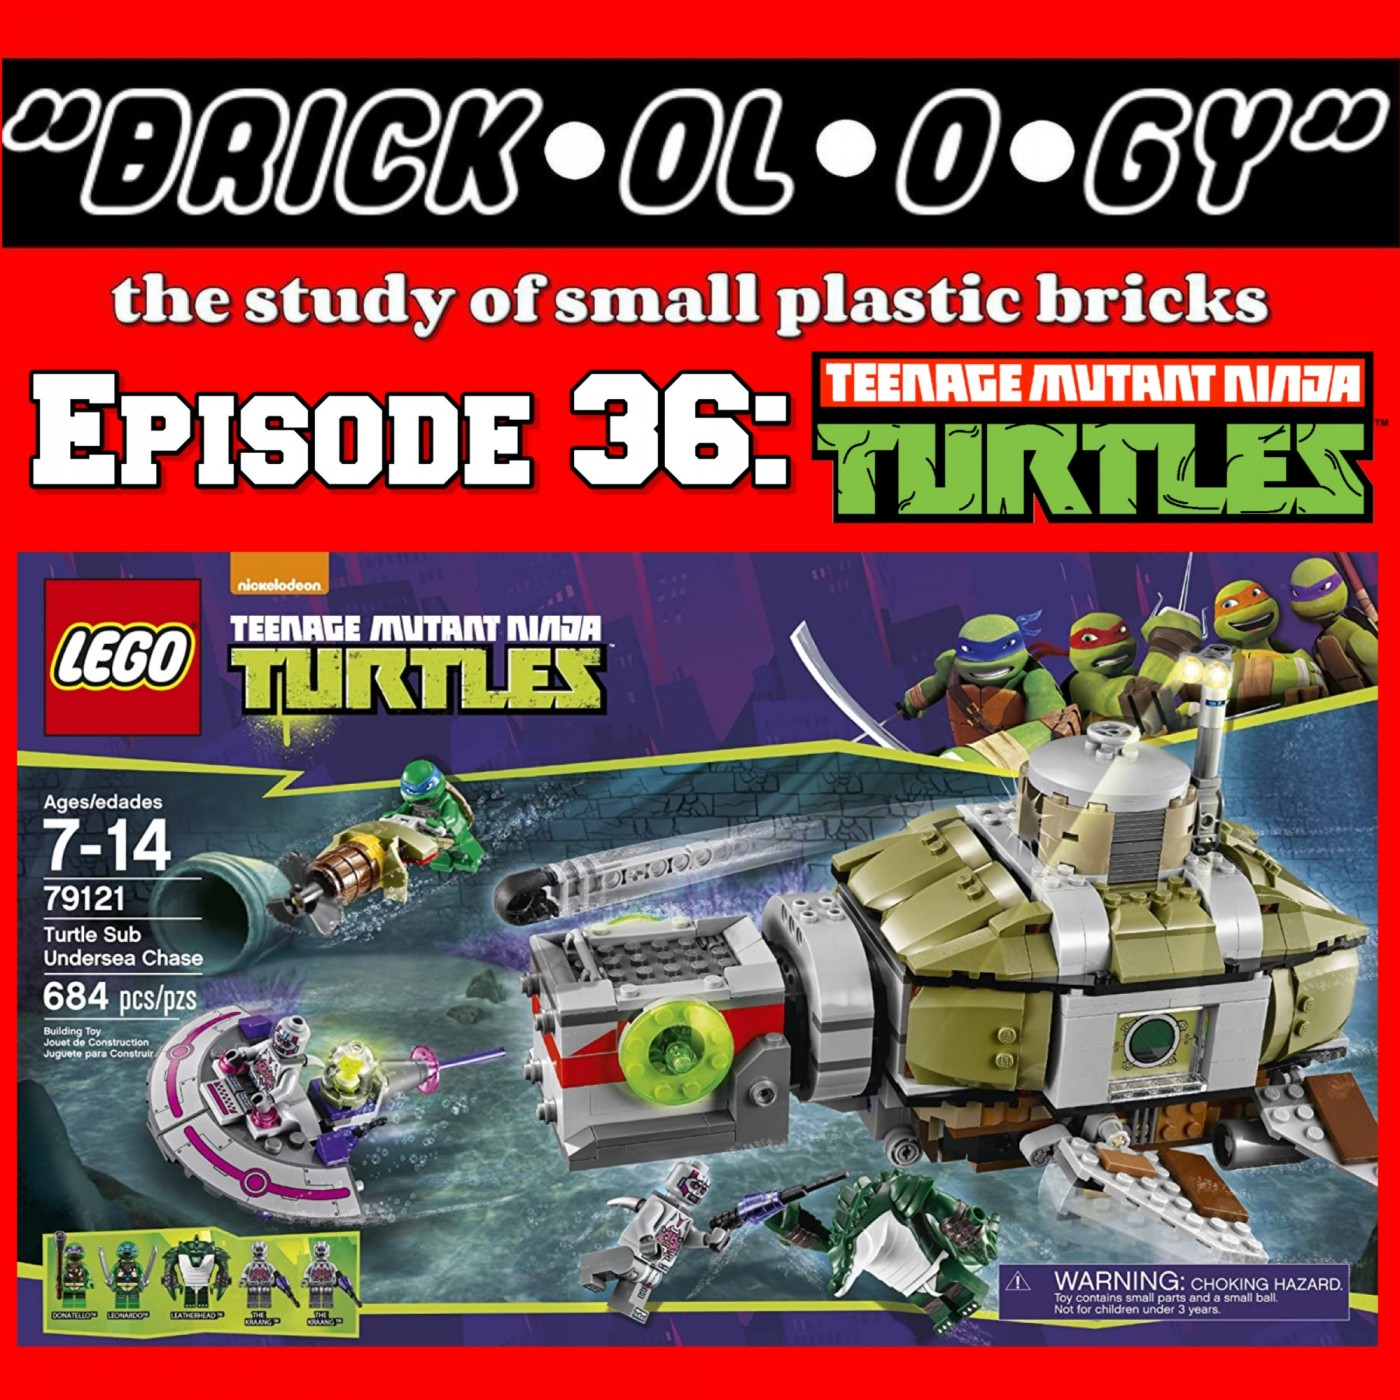 Brickology Episode 36 - LEGO Teenage Mutant Ninja Turtles